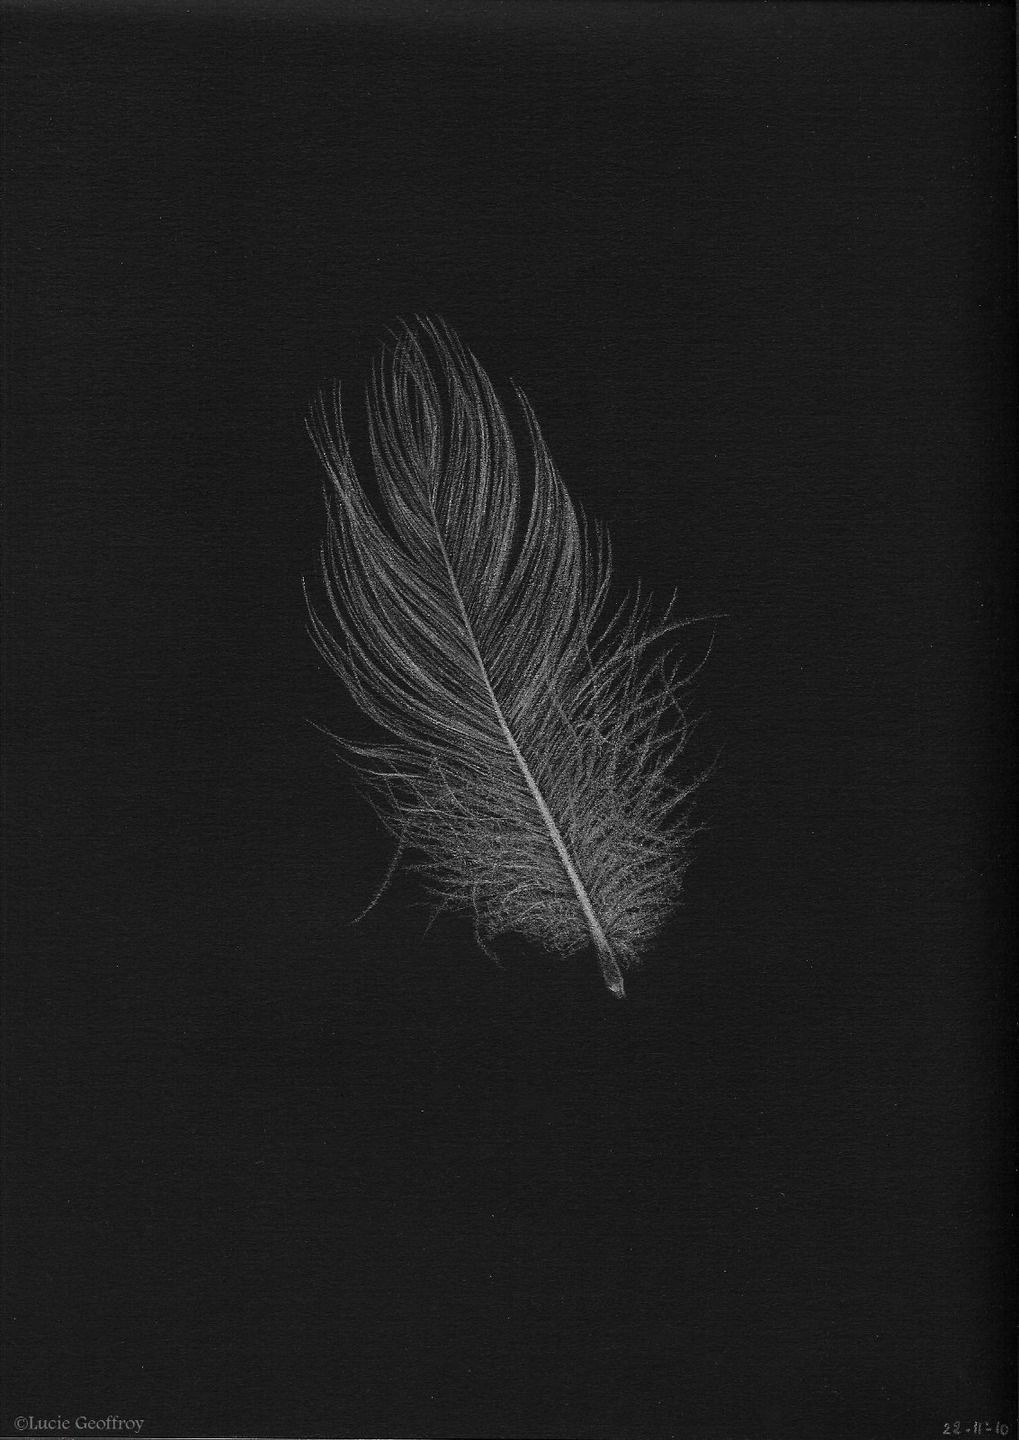 Fond Plume Sombre In 2020 Moonlight Photography Dandelion Wallpaper Sketch Painting